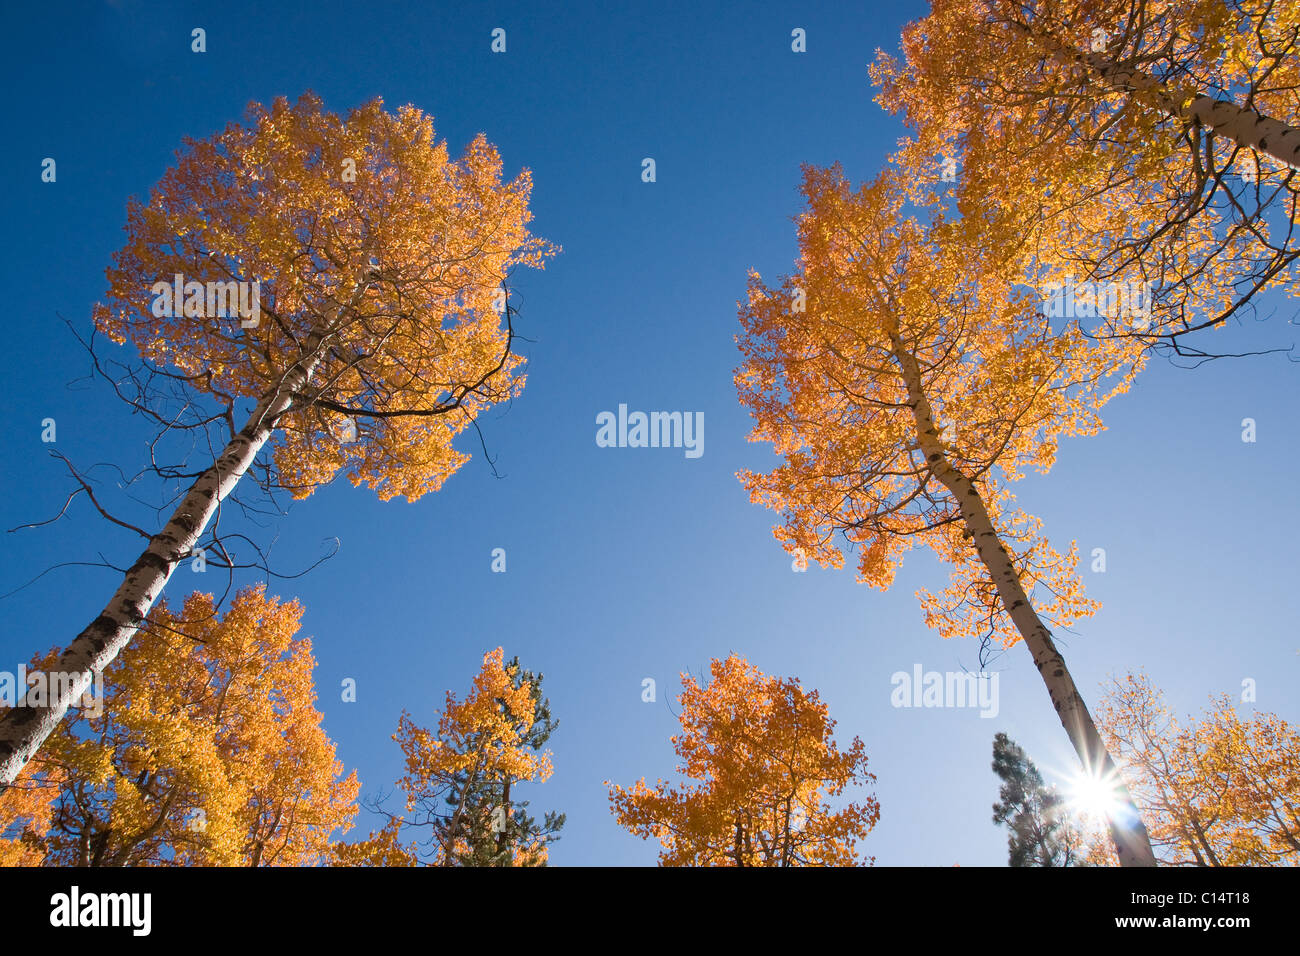 Yellow aspen trees in the fall against a blue sky with a sunburst near Tahoe City near Lake Tahoe in California - Stock Image